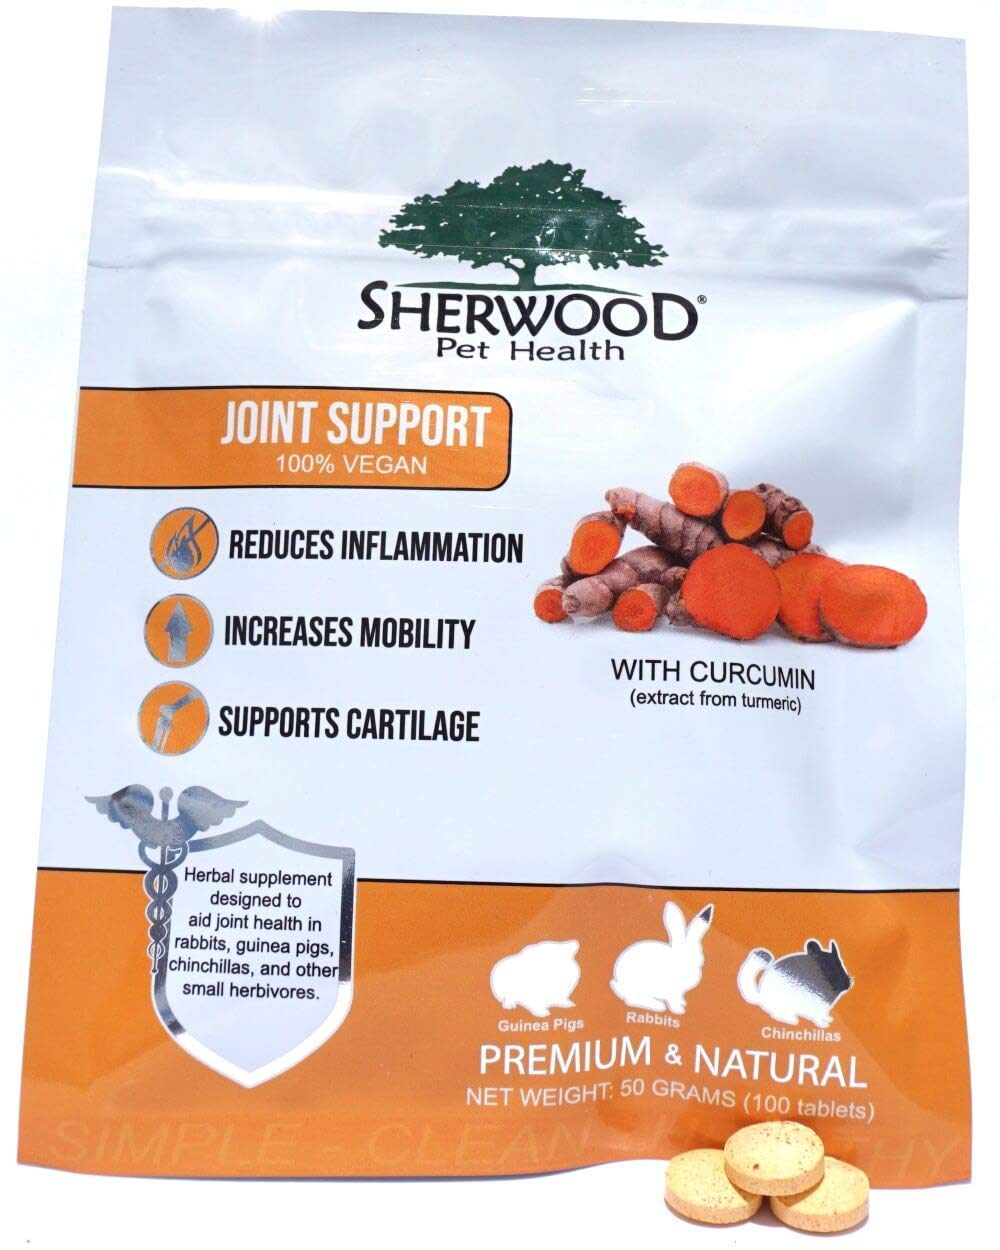 Sherwood Pet Health Vegan Joint Support (100 Tablets - 50 Grams) by Sherwood Pet Health